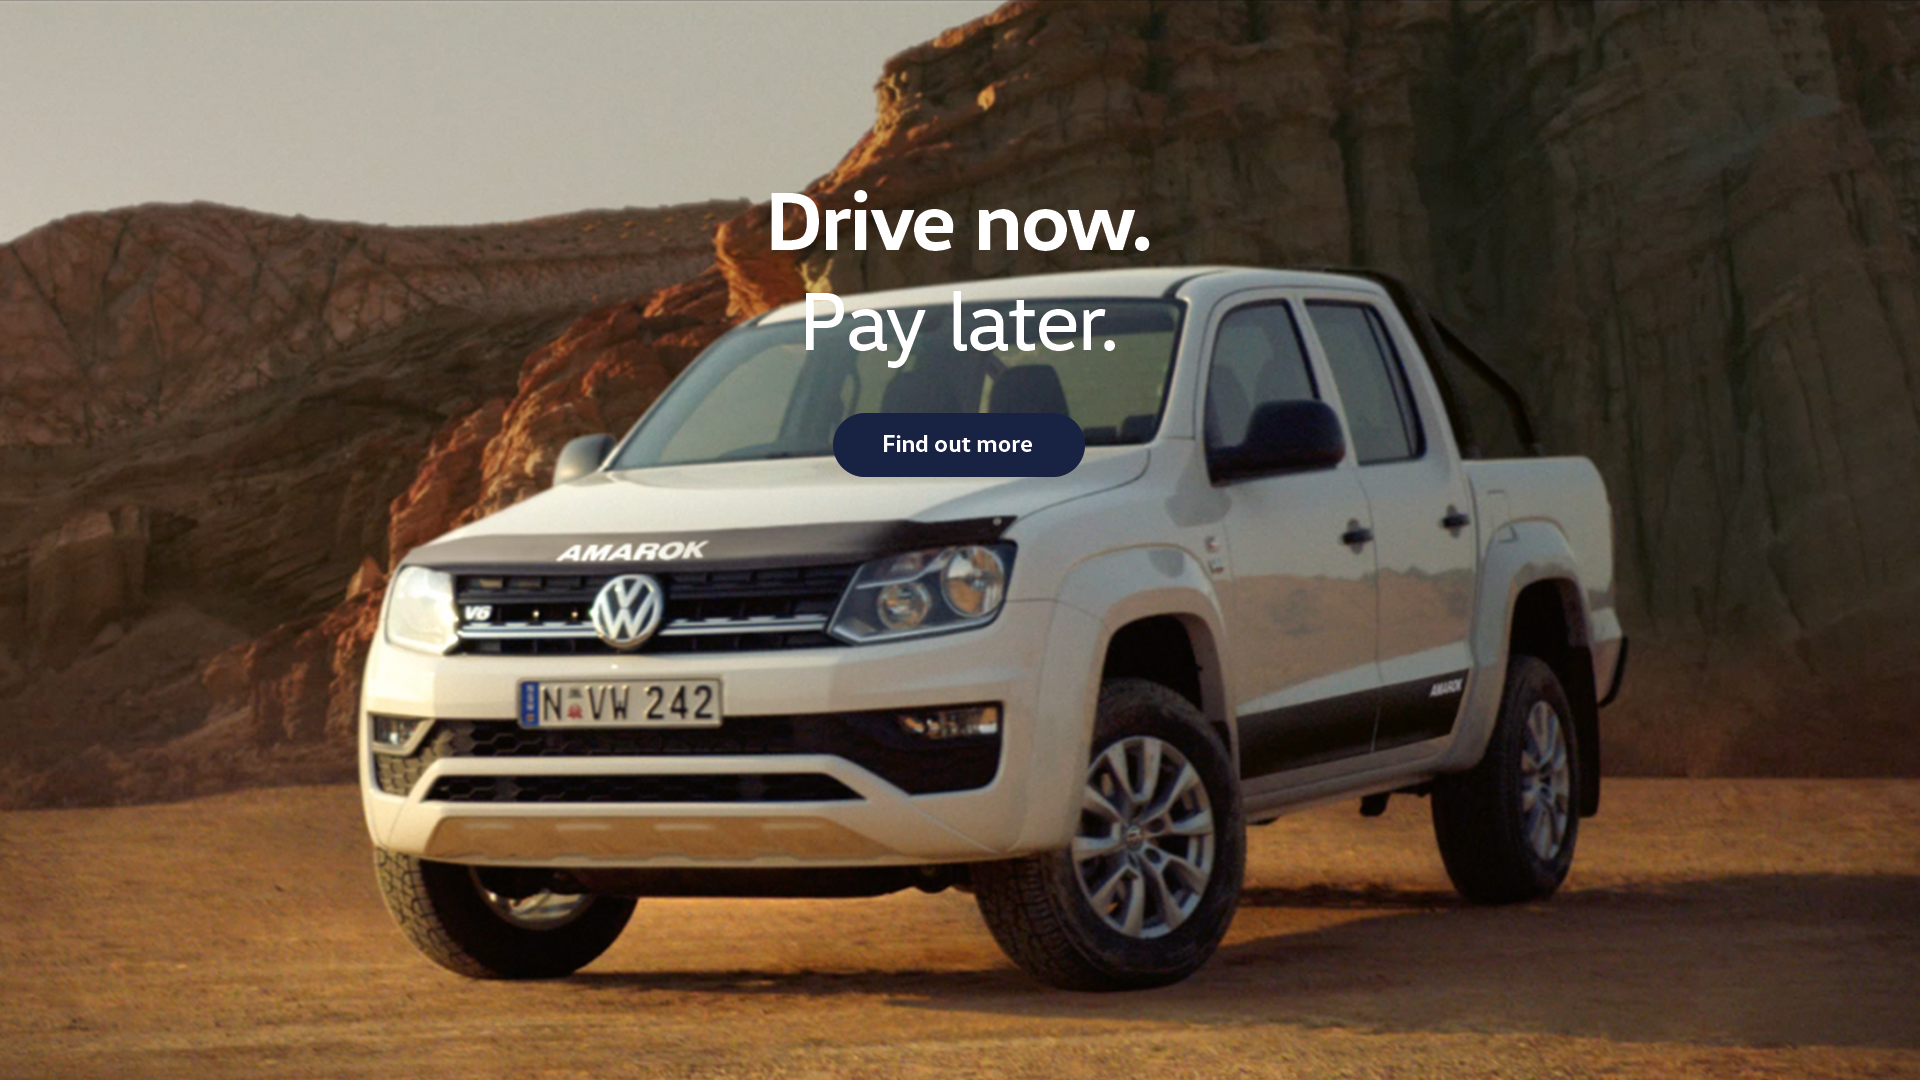 Volkswagen Amarok. Drive now. Pay later. Test drive today